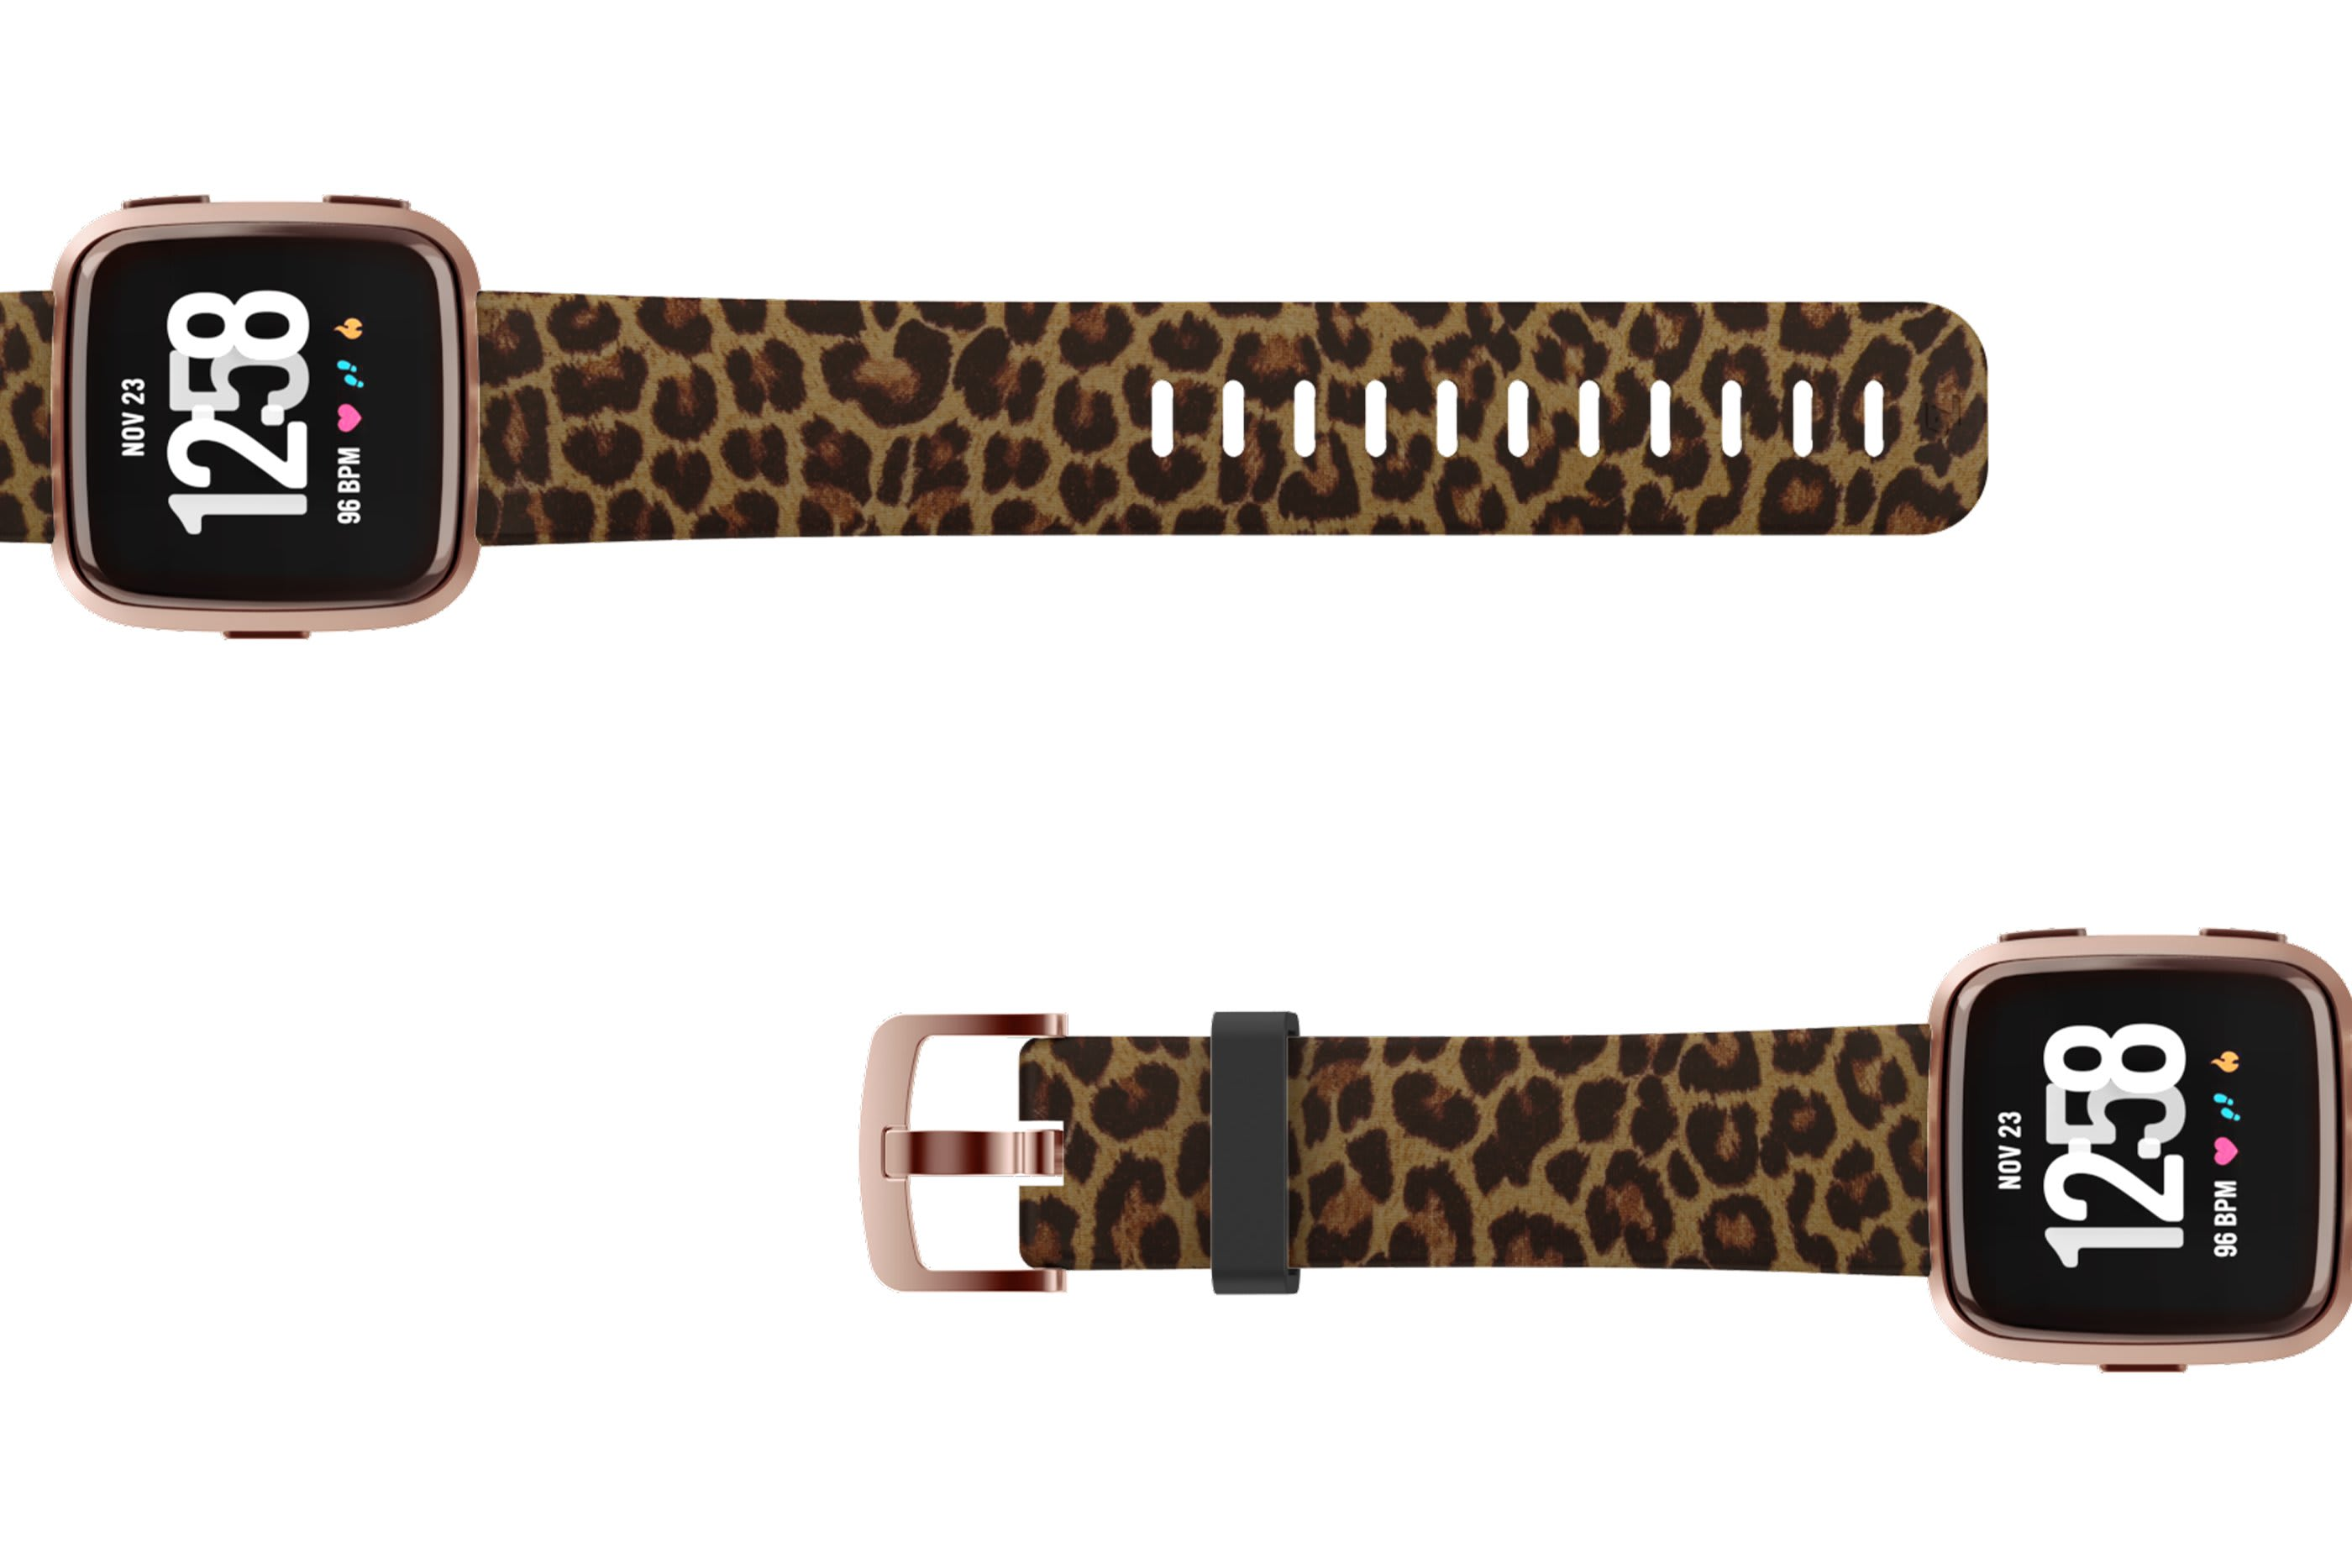 Leopard Fitbit Versa watch band with rose gold hardware viewed top down